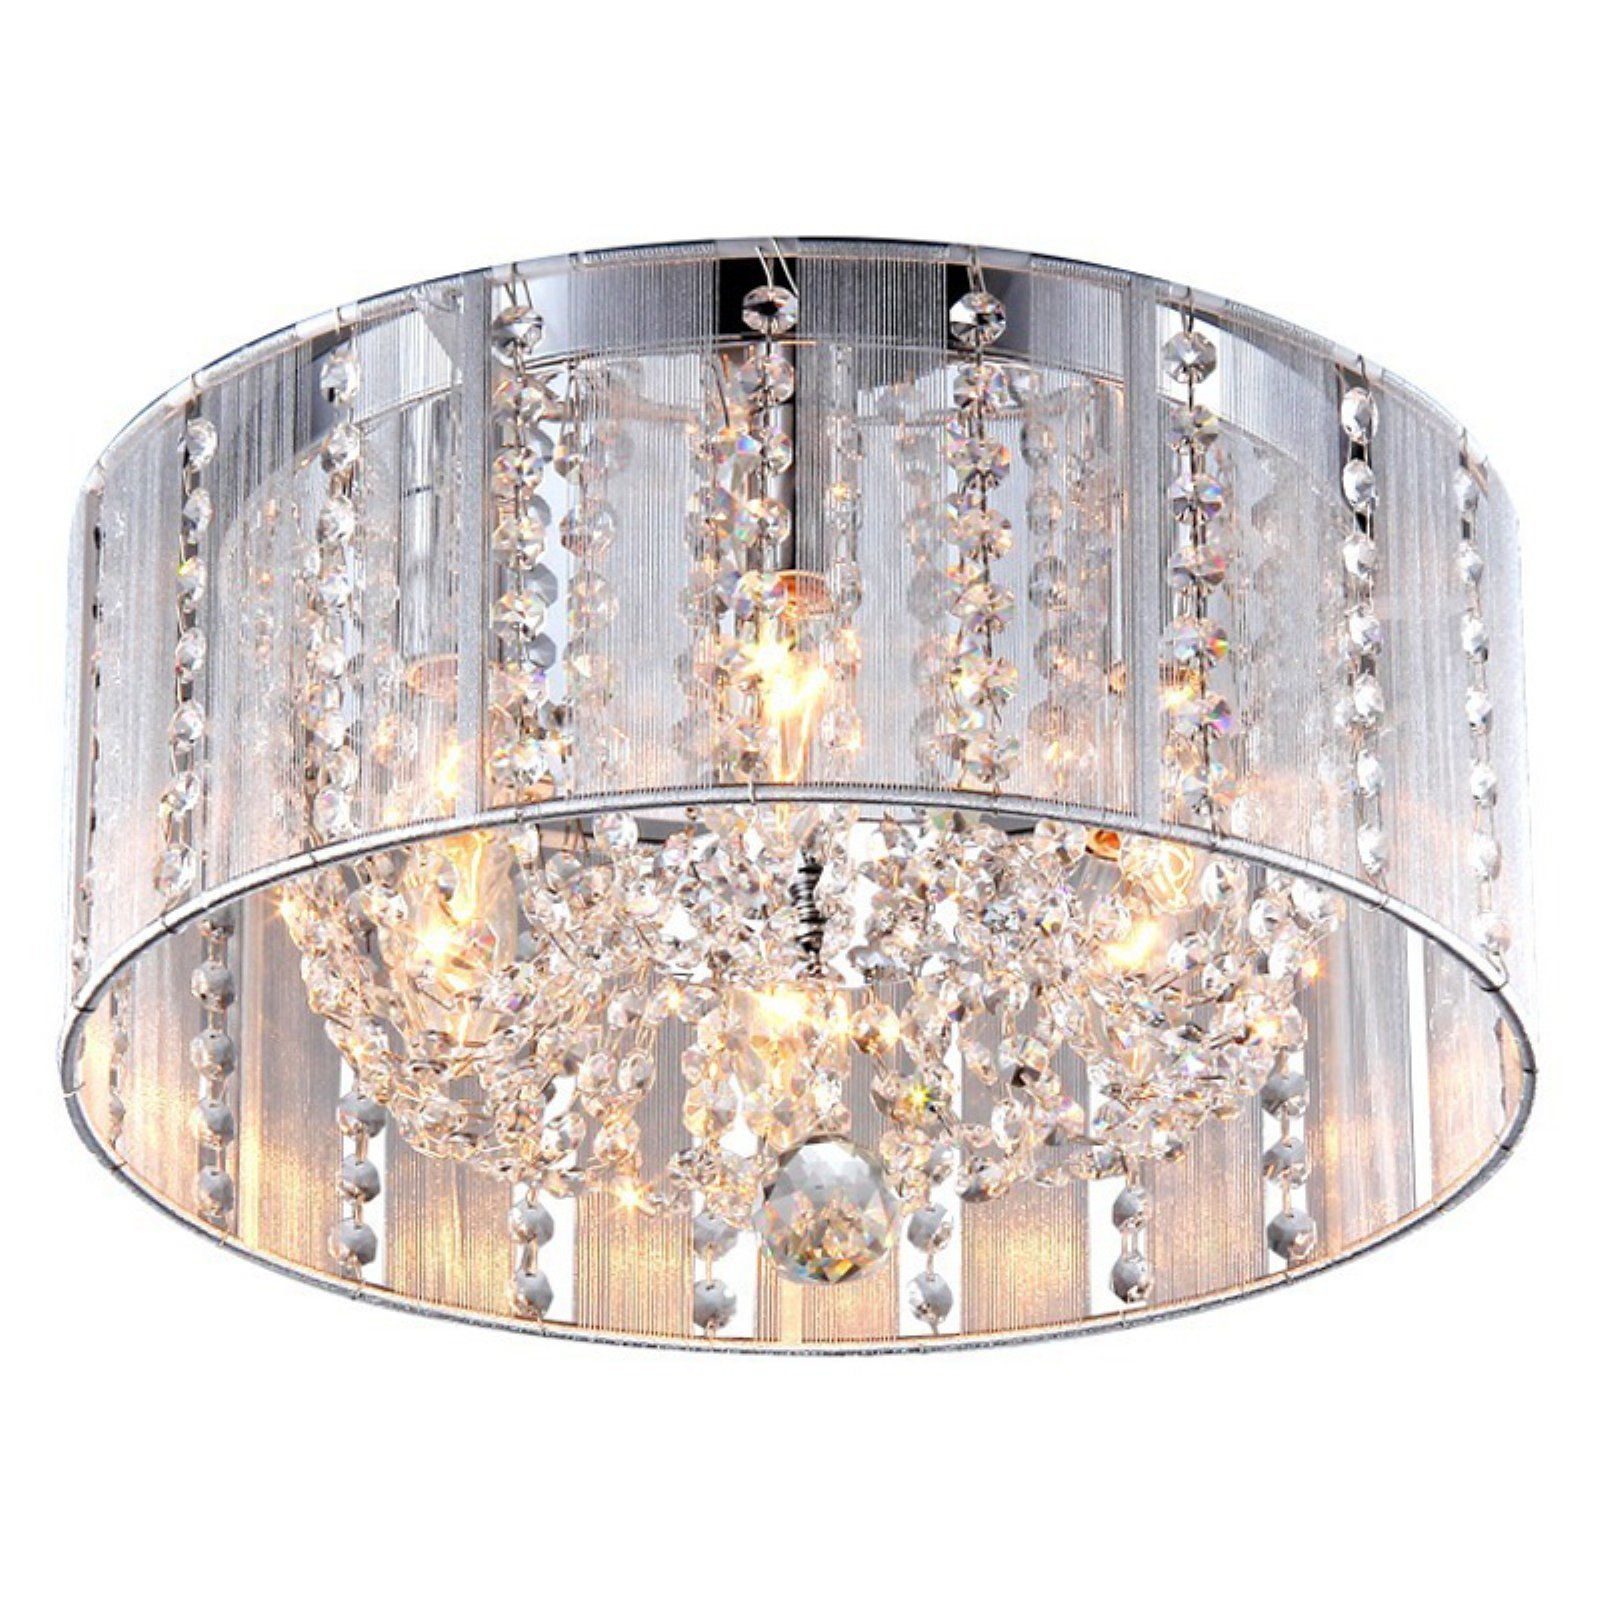 Addison 6-light White 16-inch Crystal Flush Mount by Supplier Generic